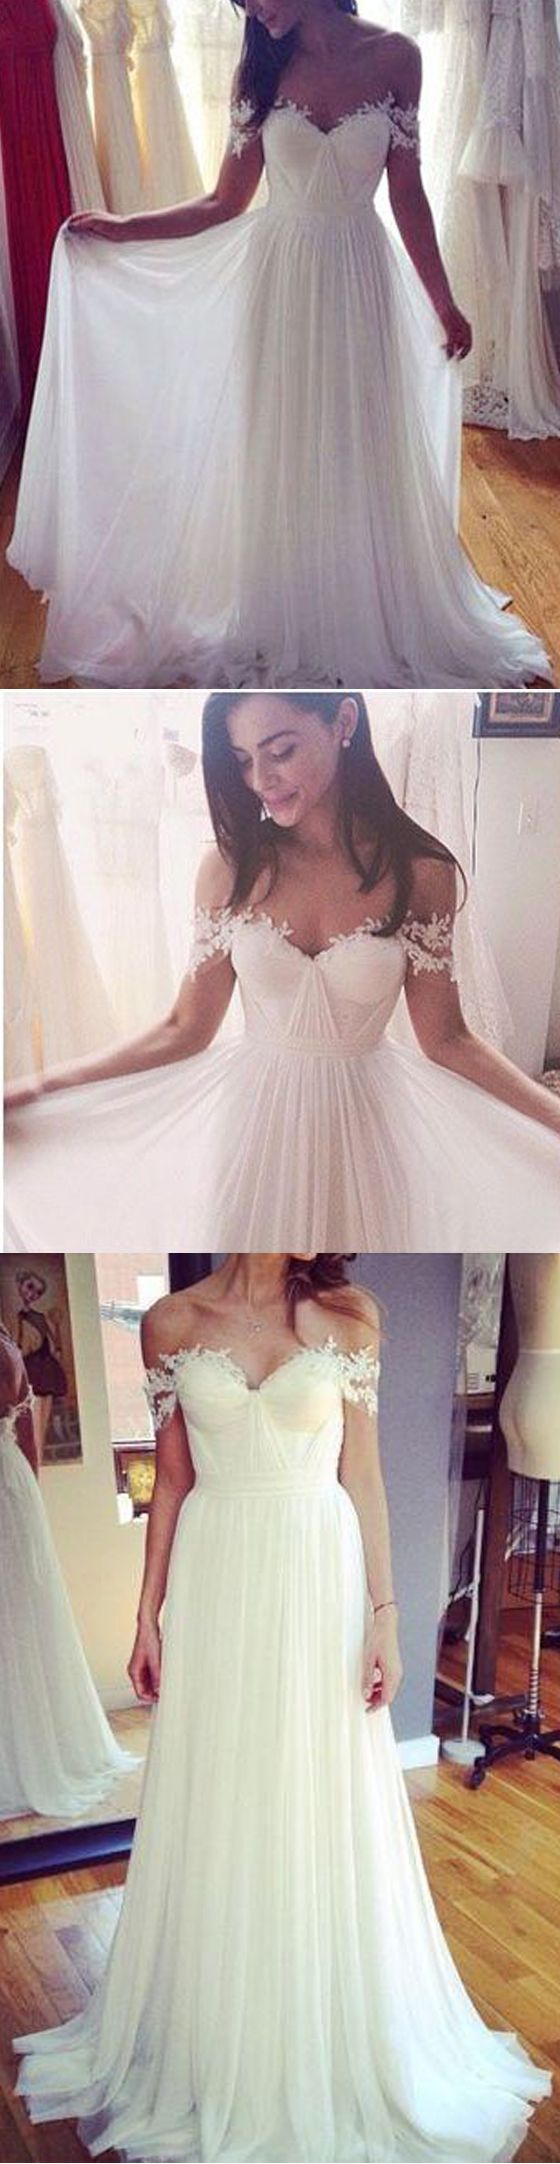 This is actually so pretty!